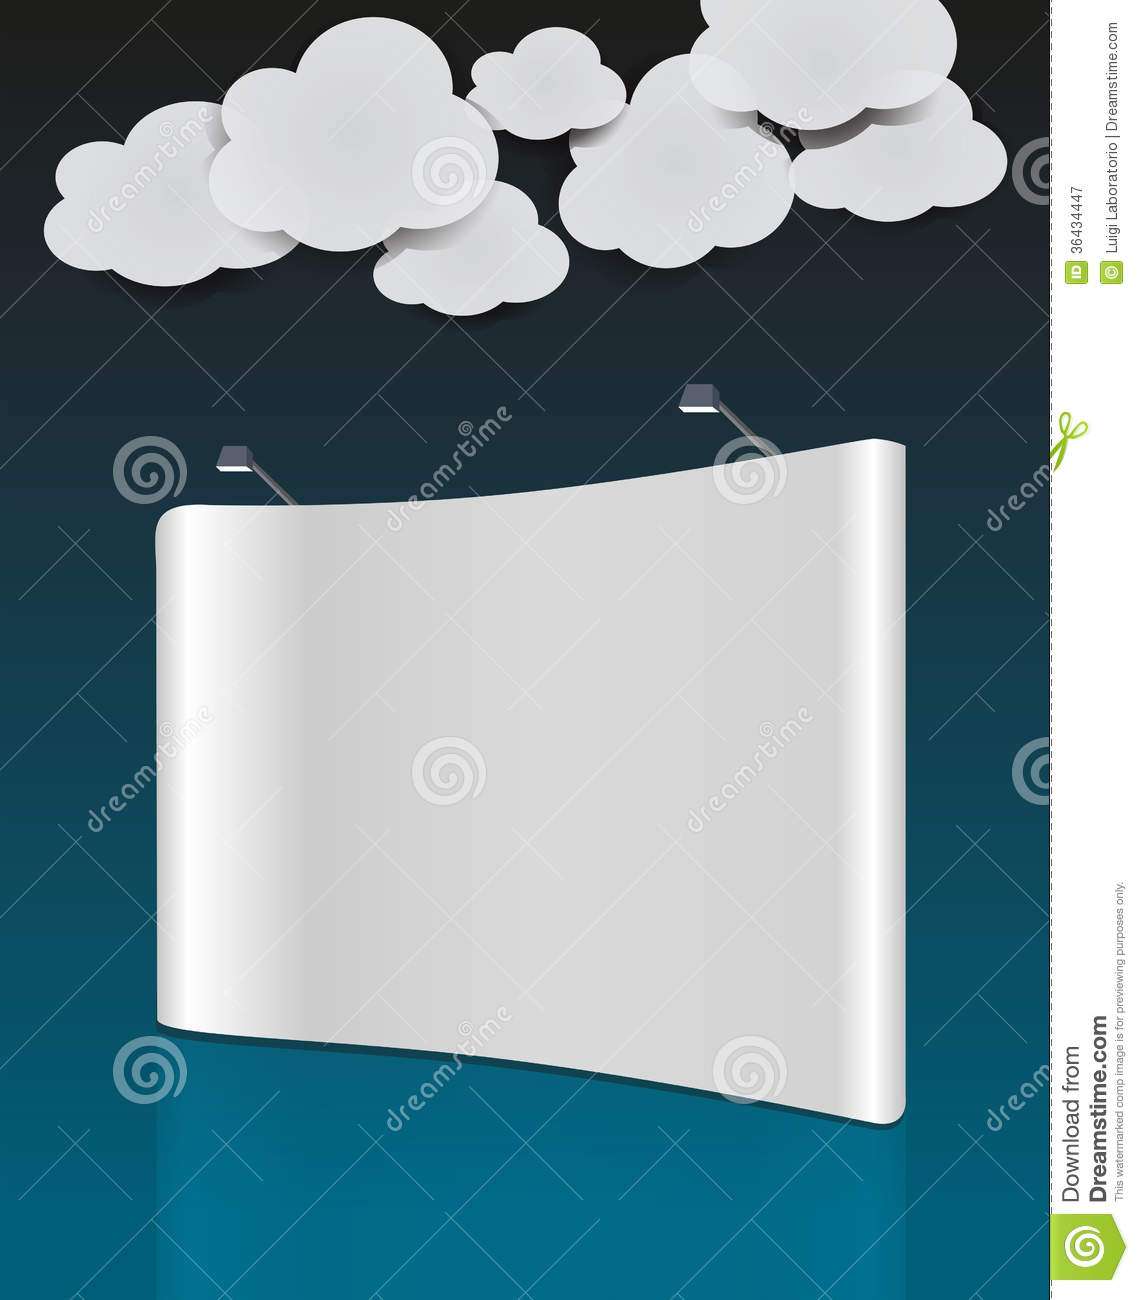 Exhibition Booth Vector Free Download : Cloud vector blank trade show royalty free stock